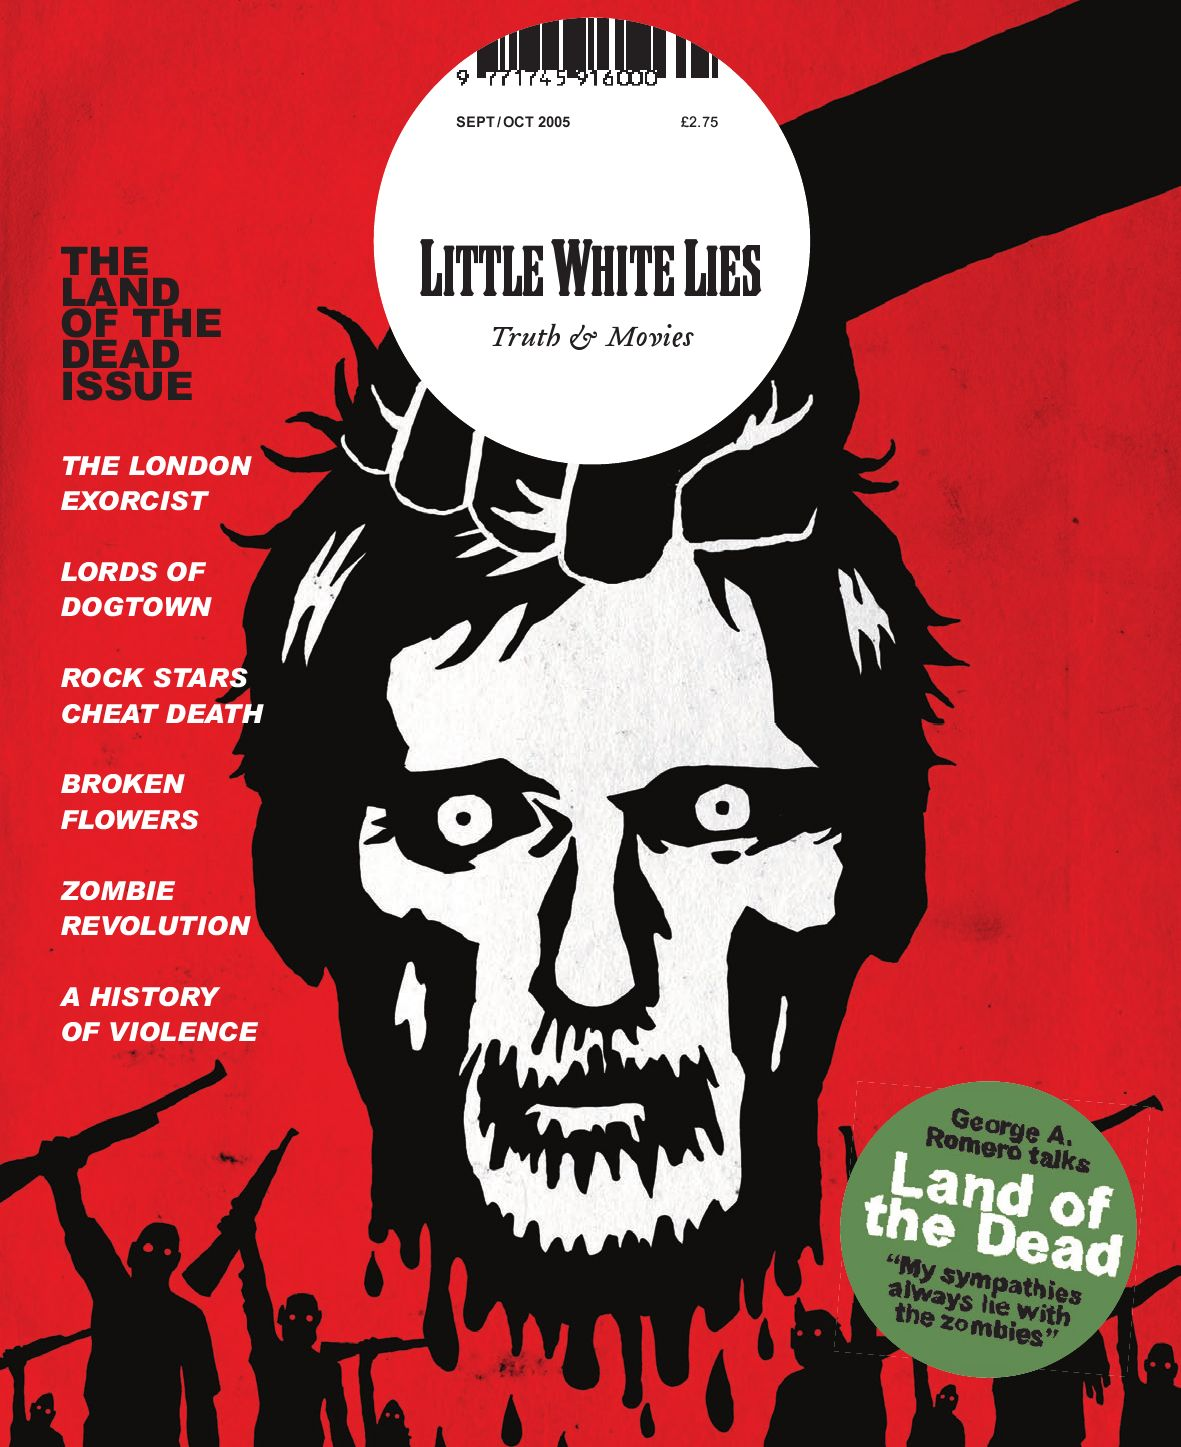 Little White Lies 03 - The Land of the Dead Issue by The Church of London -  issuu 68ea3c9a80